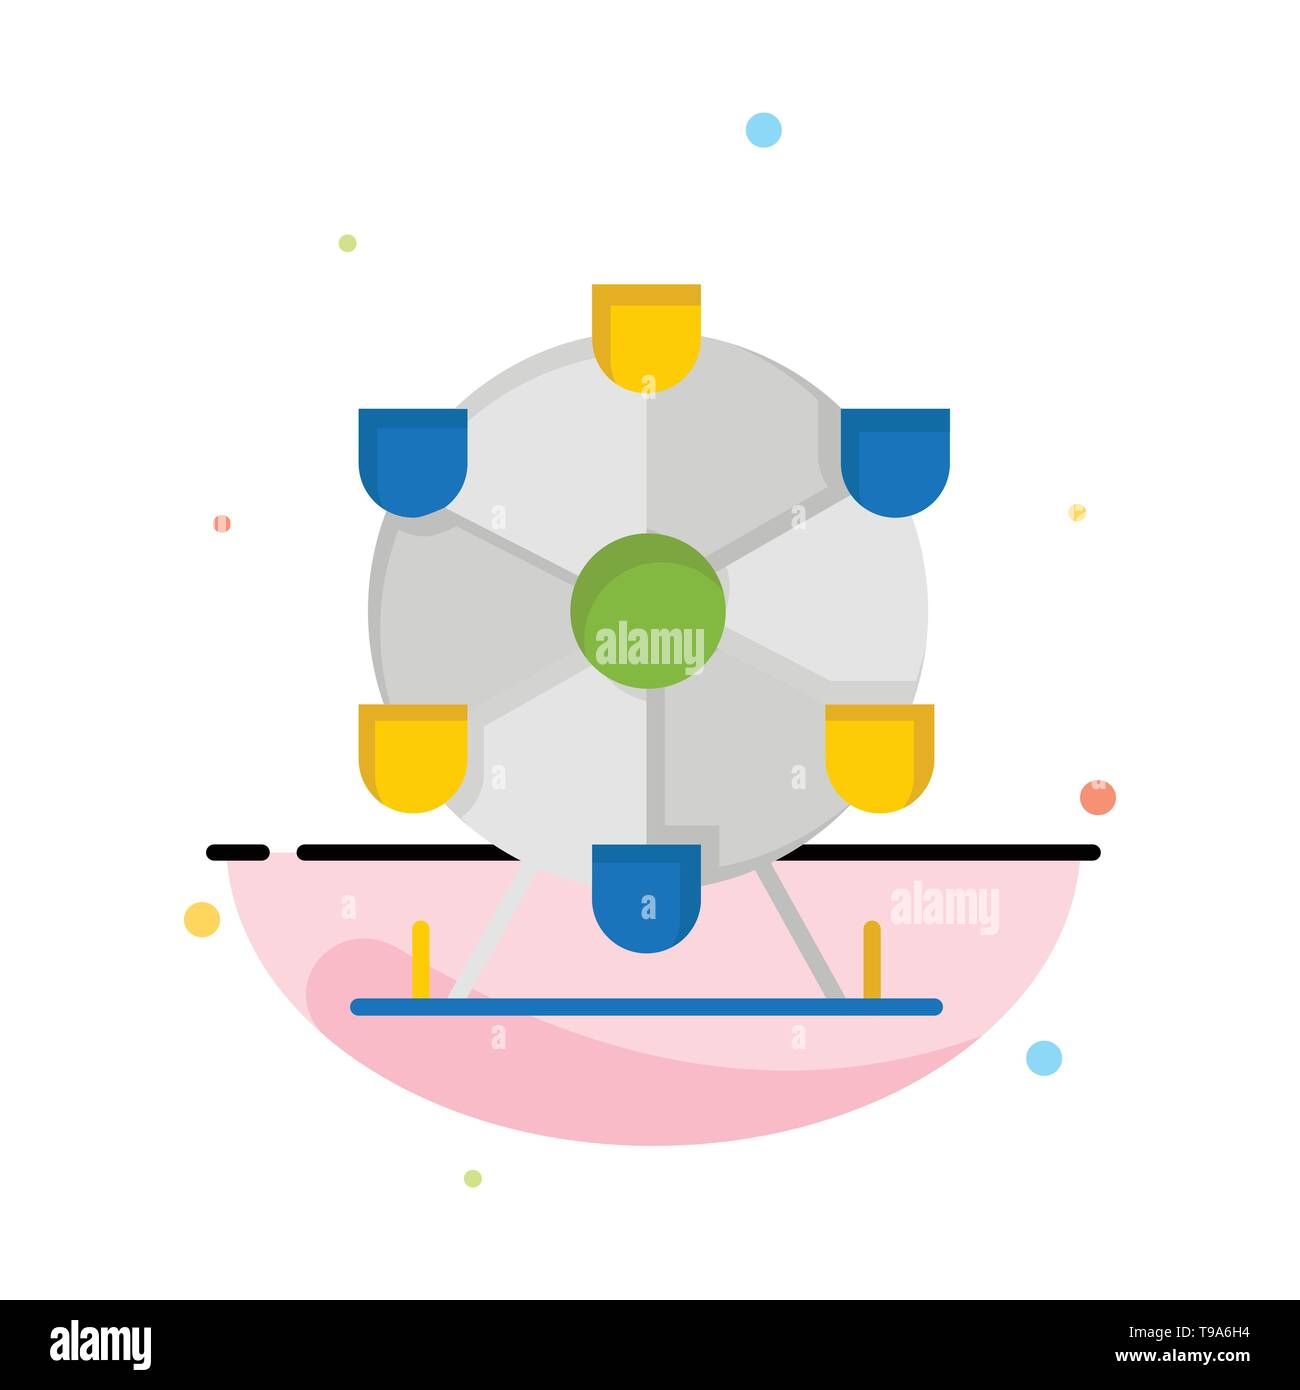 Atomium, Landmark, Monument Abstract Flat Color Icon Template - Stock Image